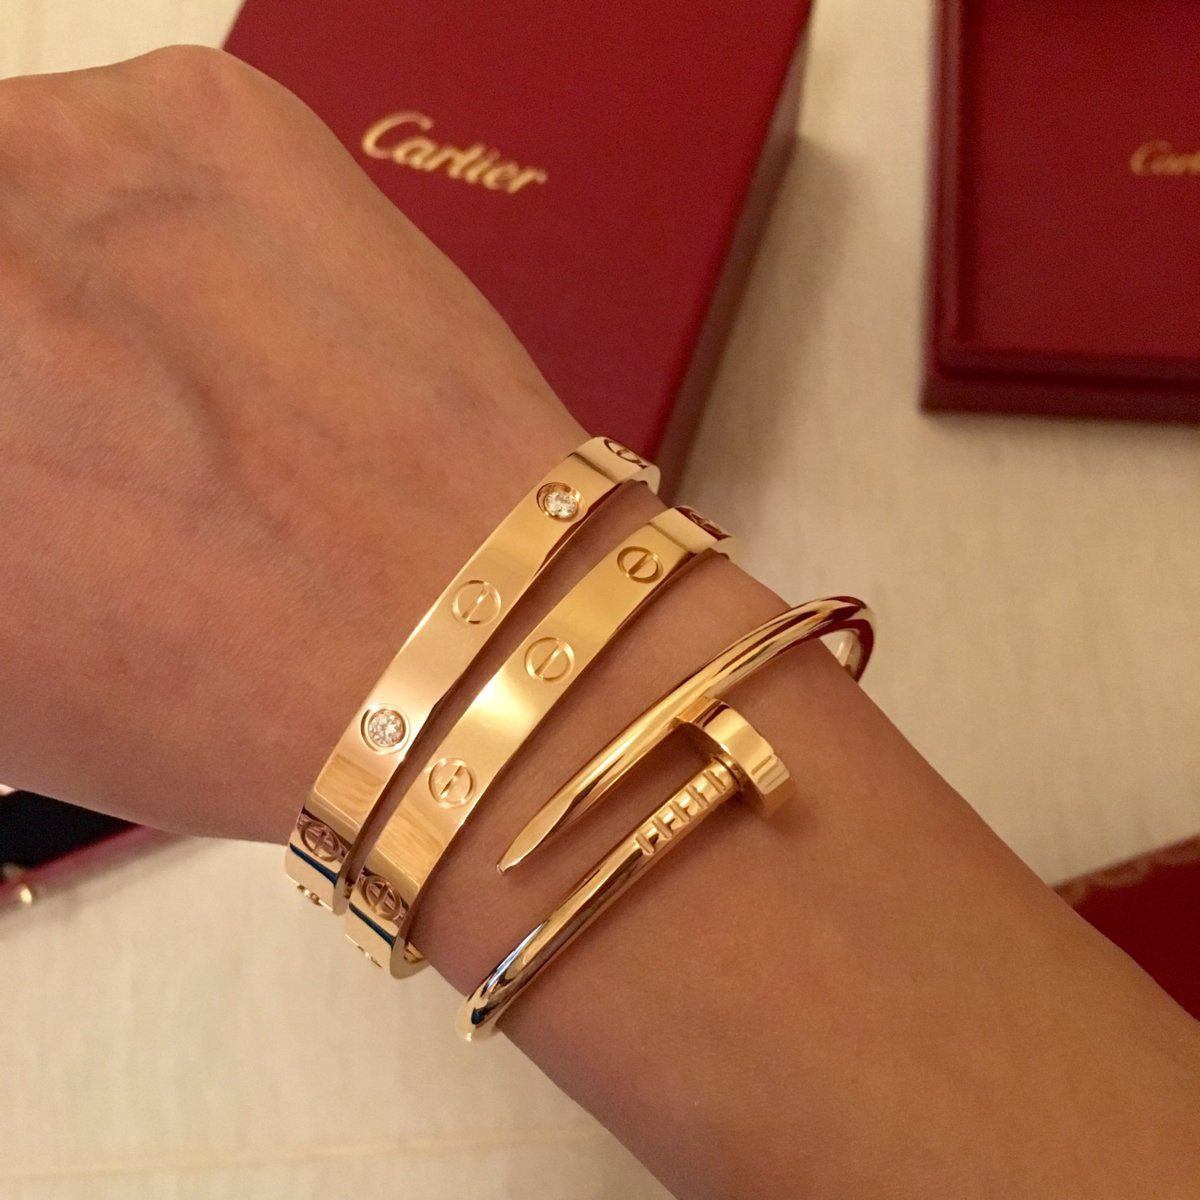 Click This Image To Show The Full Size Version Cartier Love Bracelet